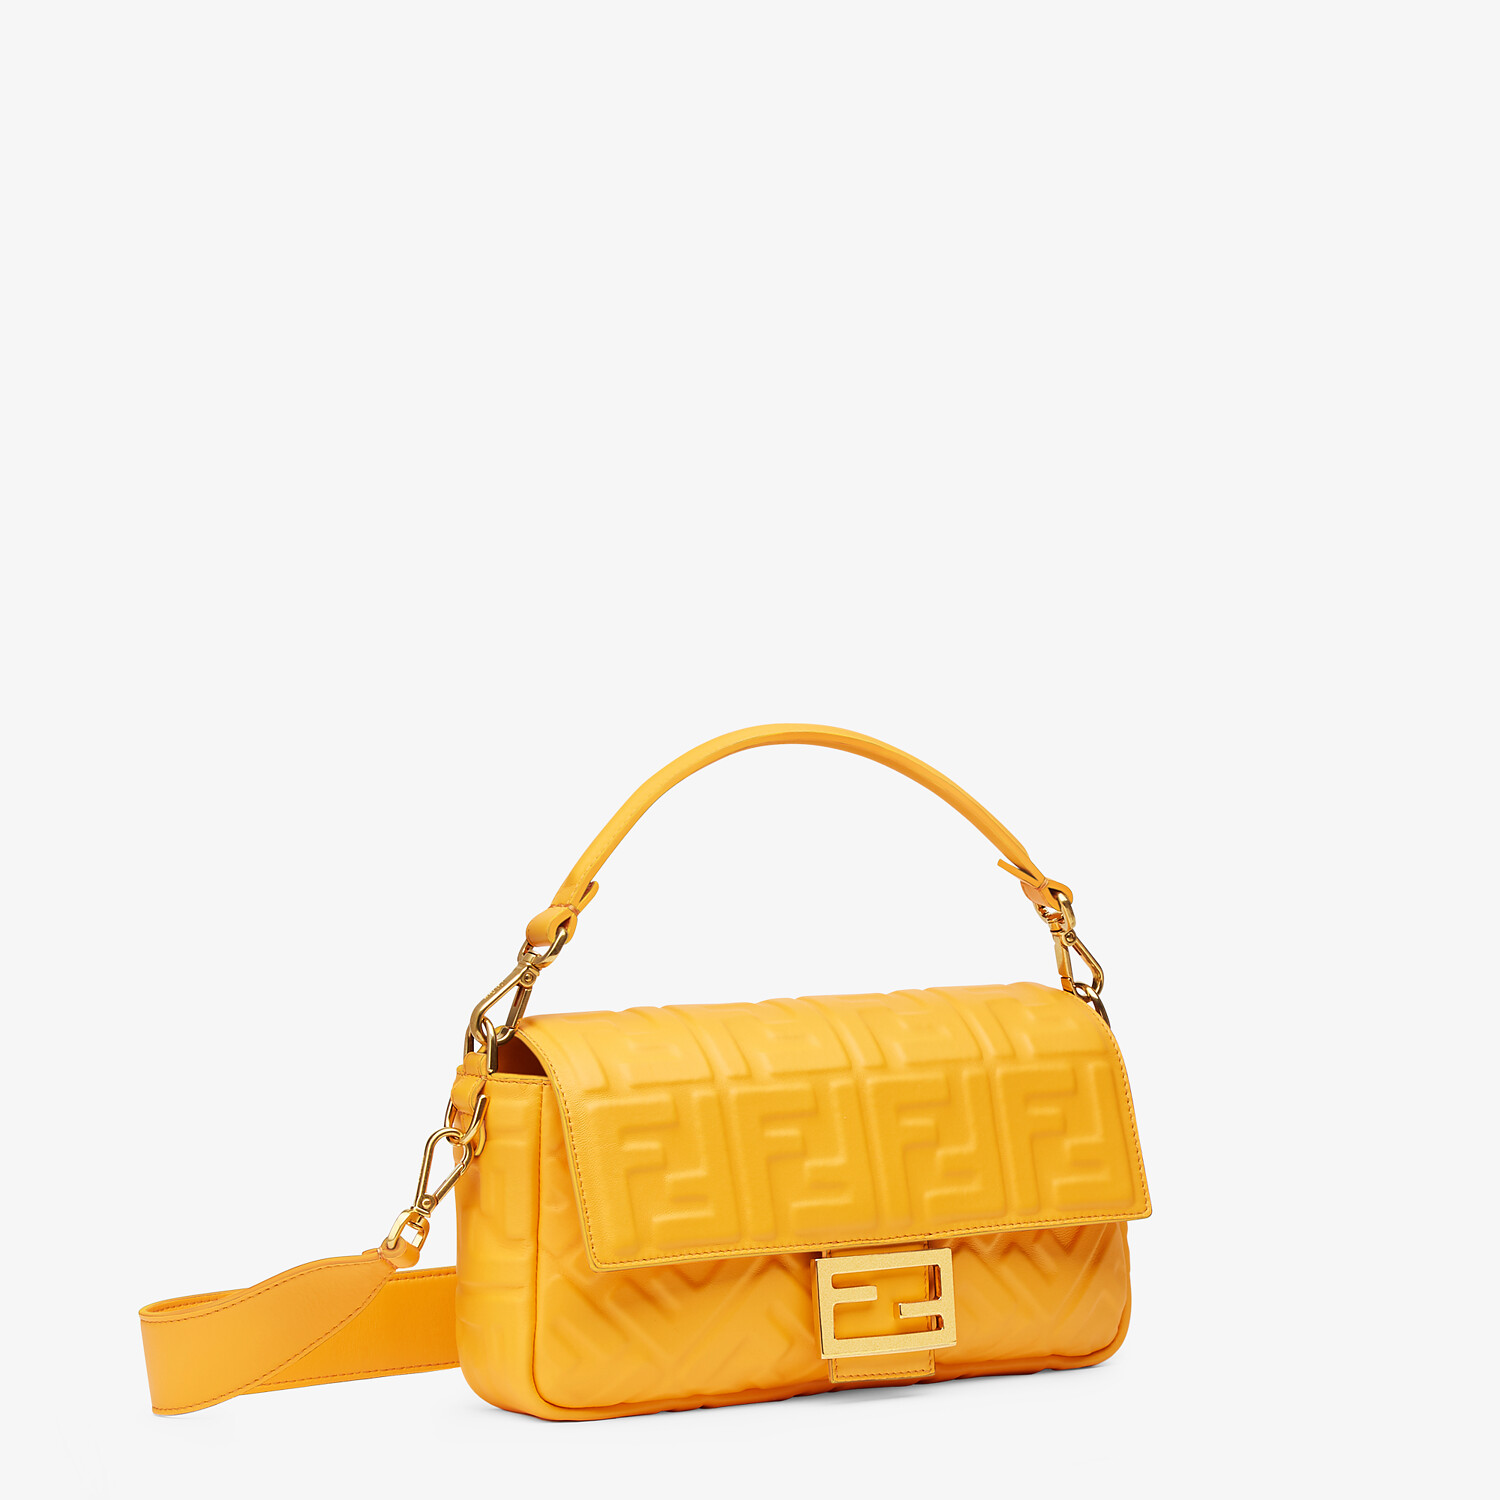 FENDI BAGUETTE - Orange nappa leather bag - view 3 detail